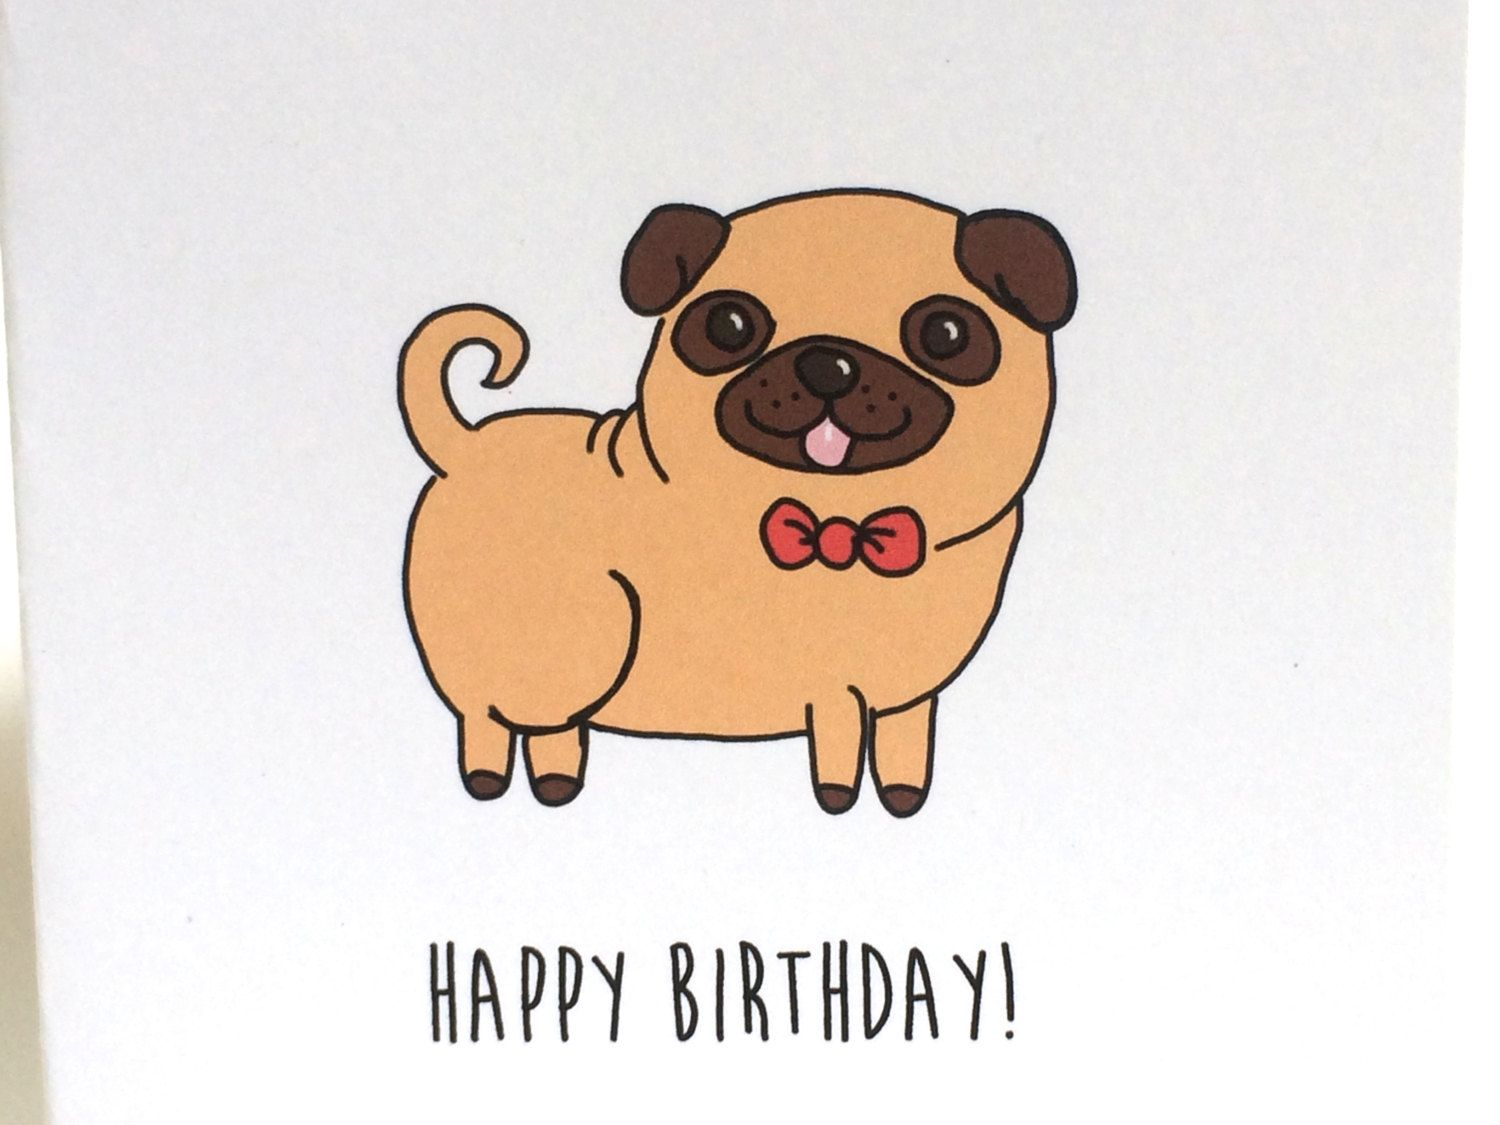 Pug Birthday Card Birthday Card From The Dog Birthday Card From The Pug Made On Recycled Paper Comes With Envelope And Seal Farting Birthday Cards Dog Birthday Card Birthday Cards